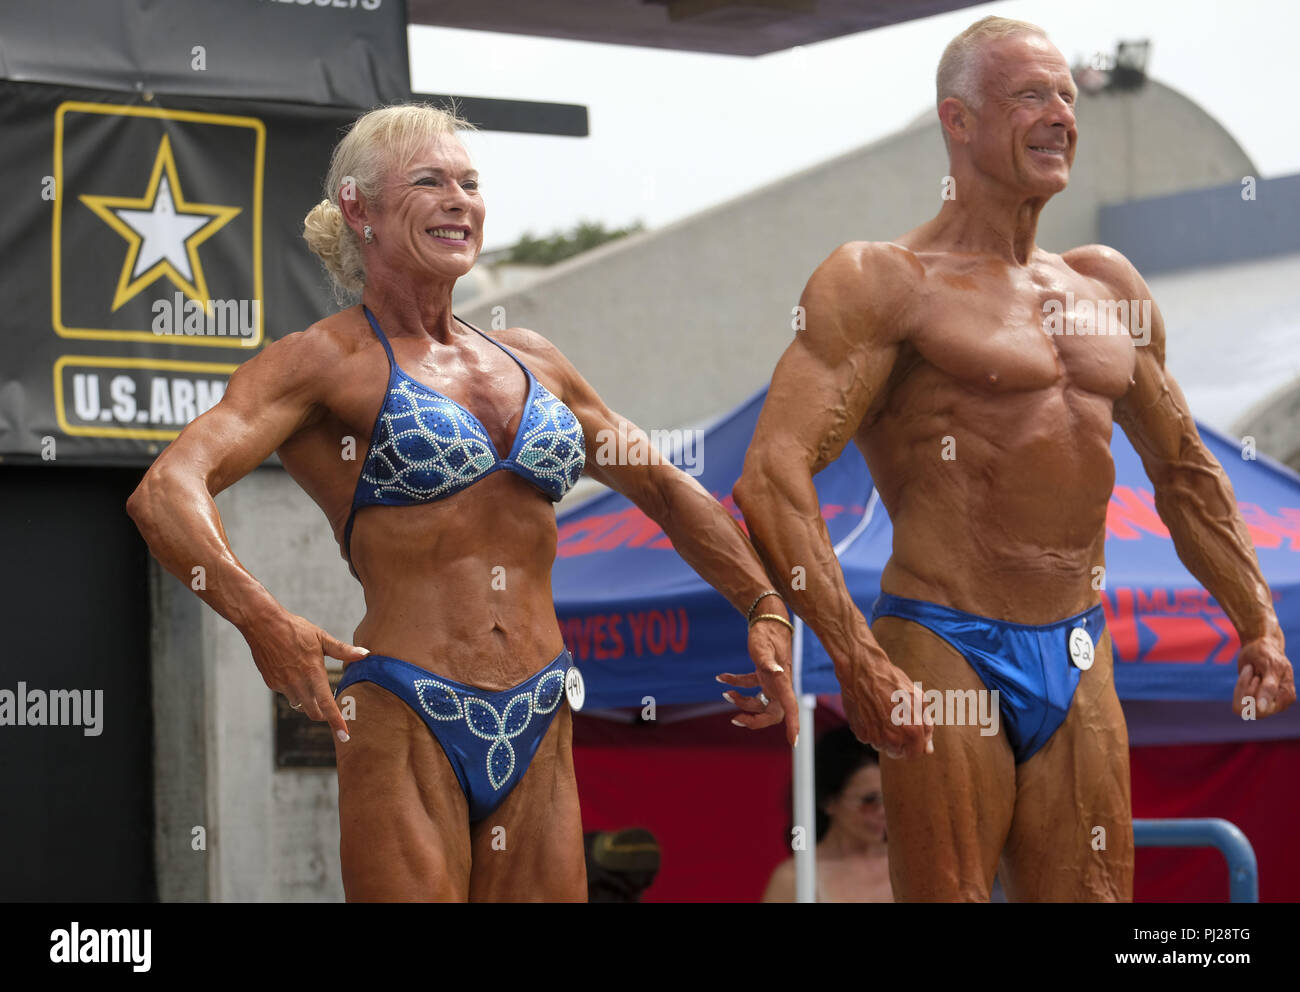 52f7343b91 The ''Muscle Beach Championship'' bodybuilding, figure bikini, vintage  swimsuit and men and women's physique contests at the Venice Beach  Recreation Center, ...